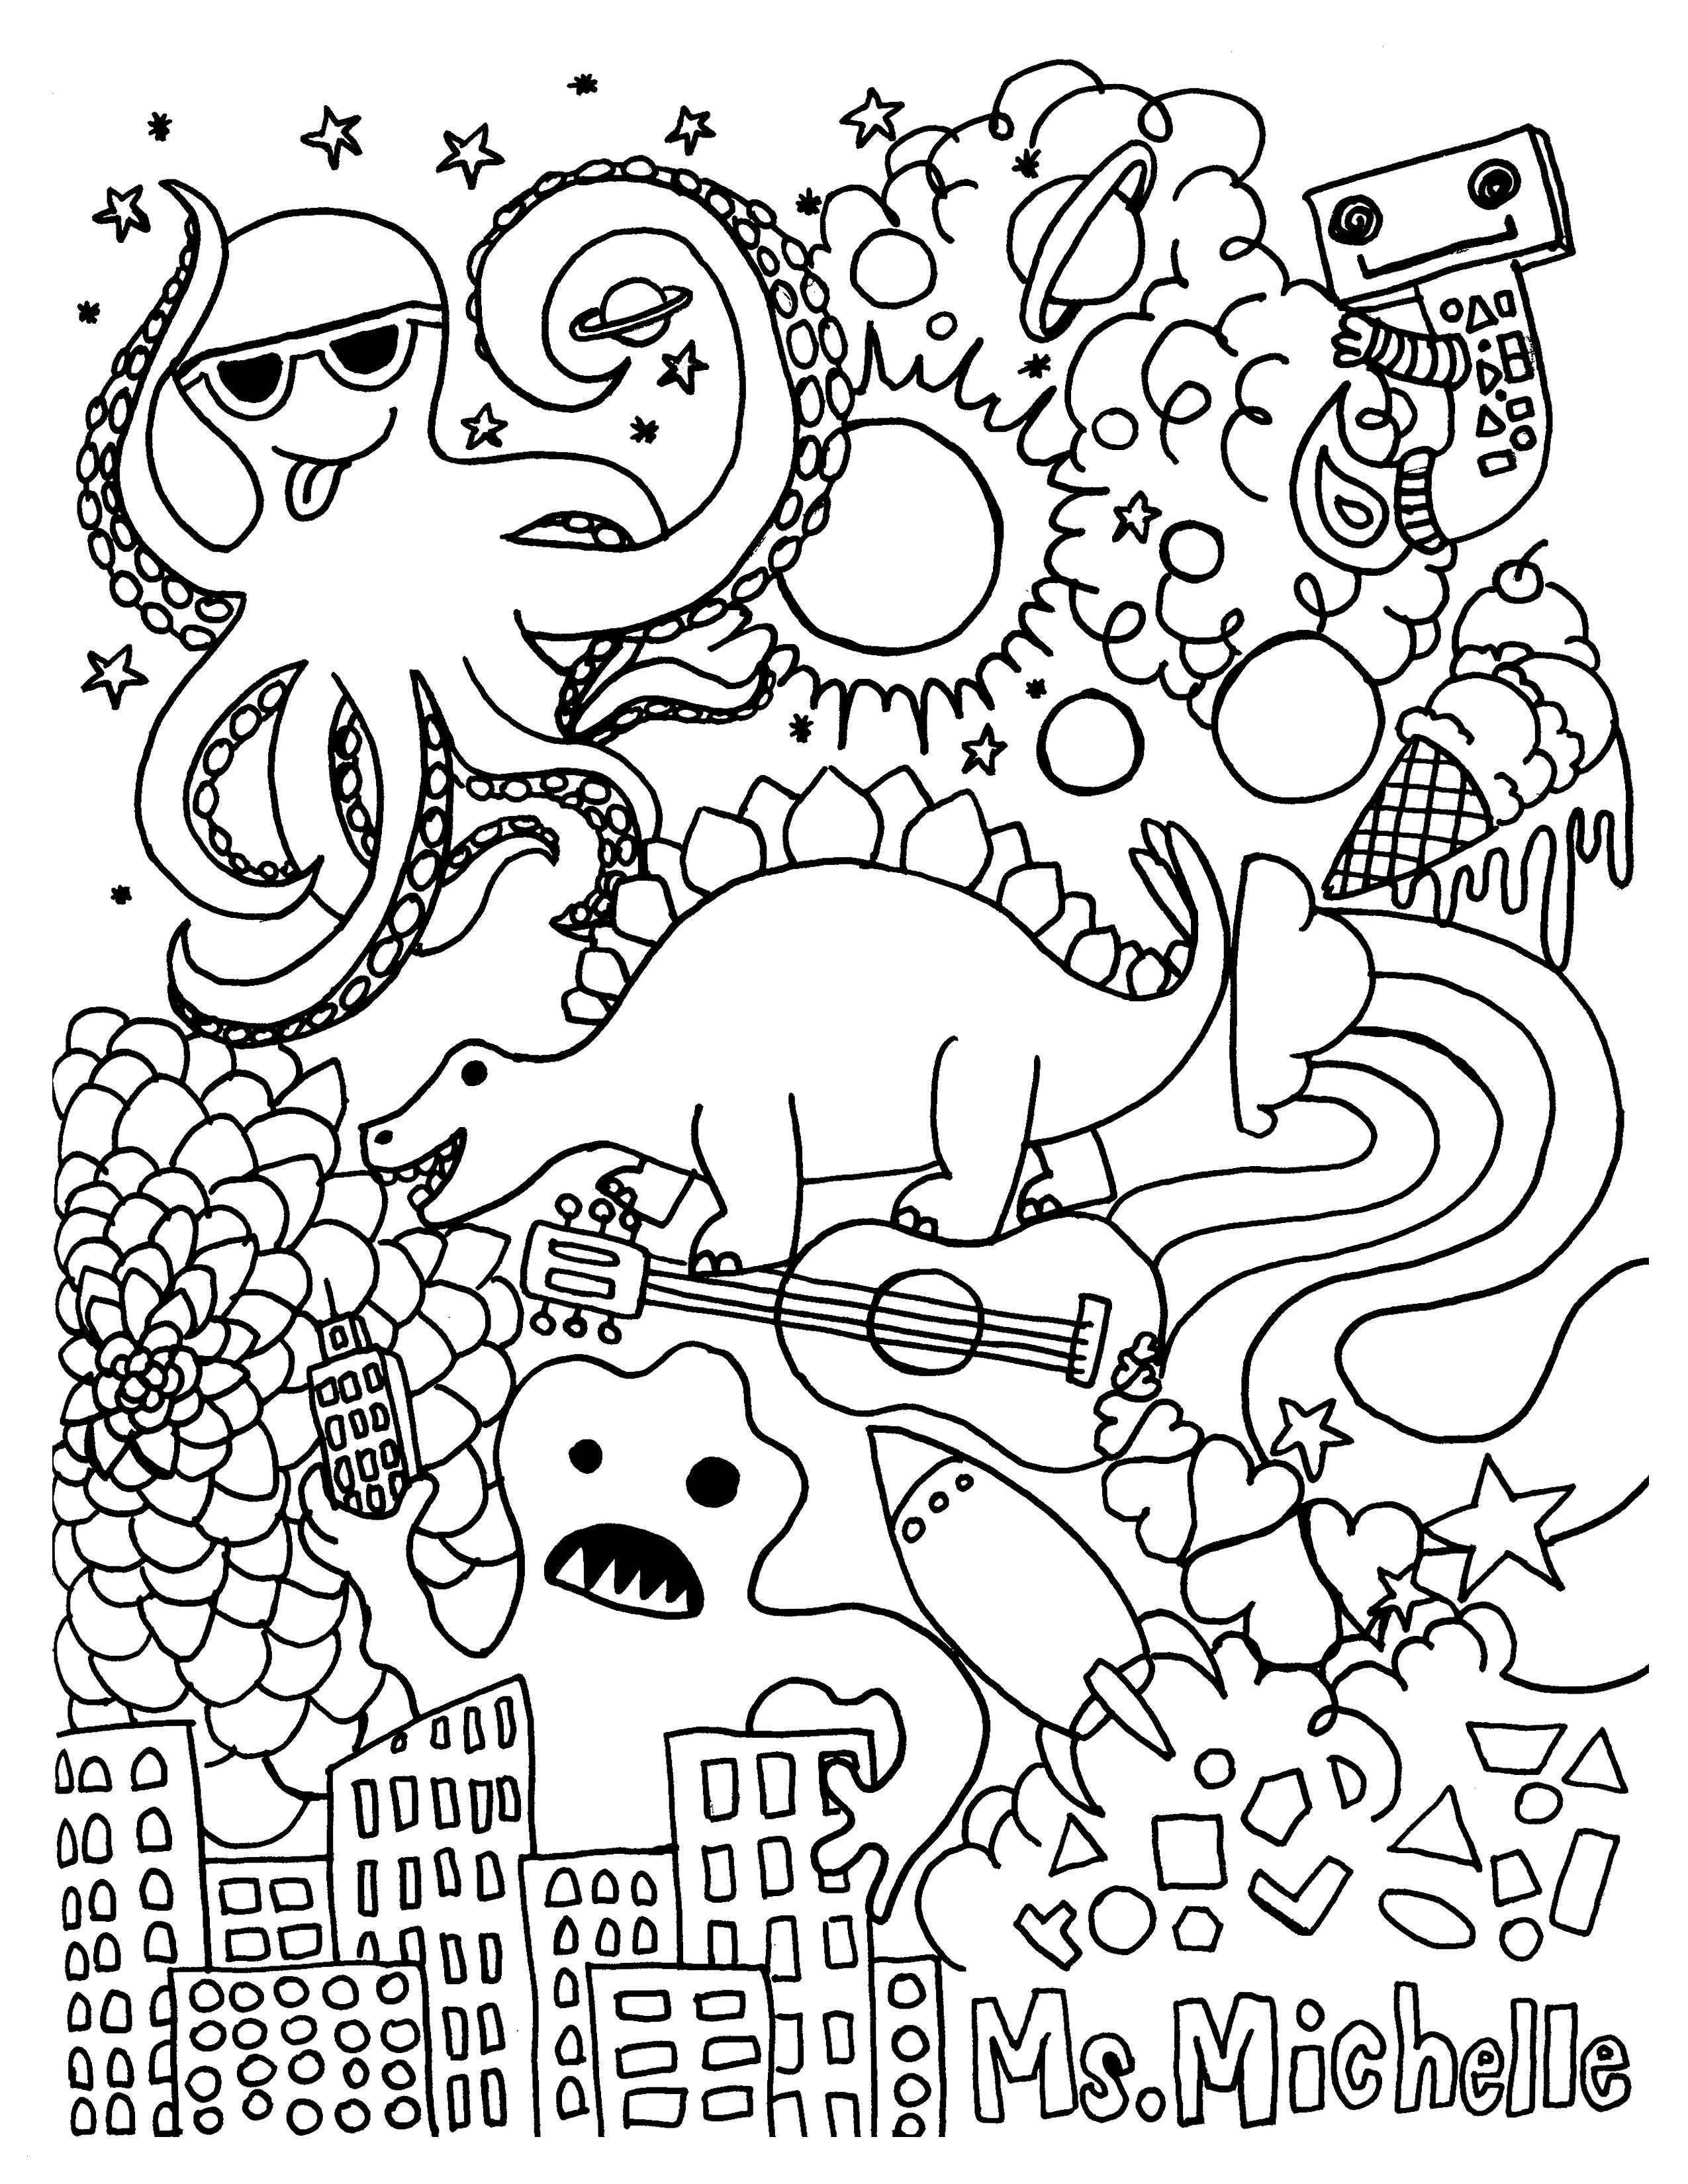 mindfulness coloring pages Collection-Zoey 101 Coloring Pages Mindfulness Coloring Pages Luxury Coloring Pages About Jesus 12-j